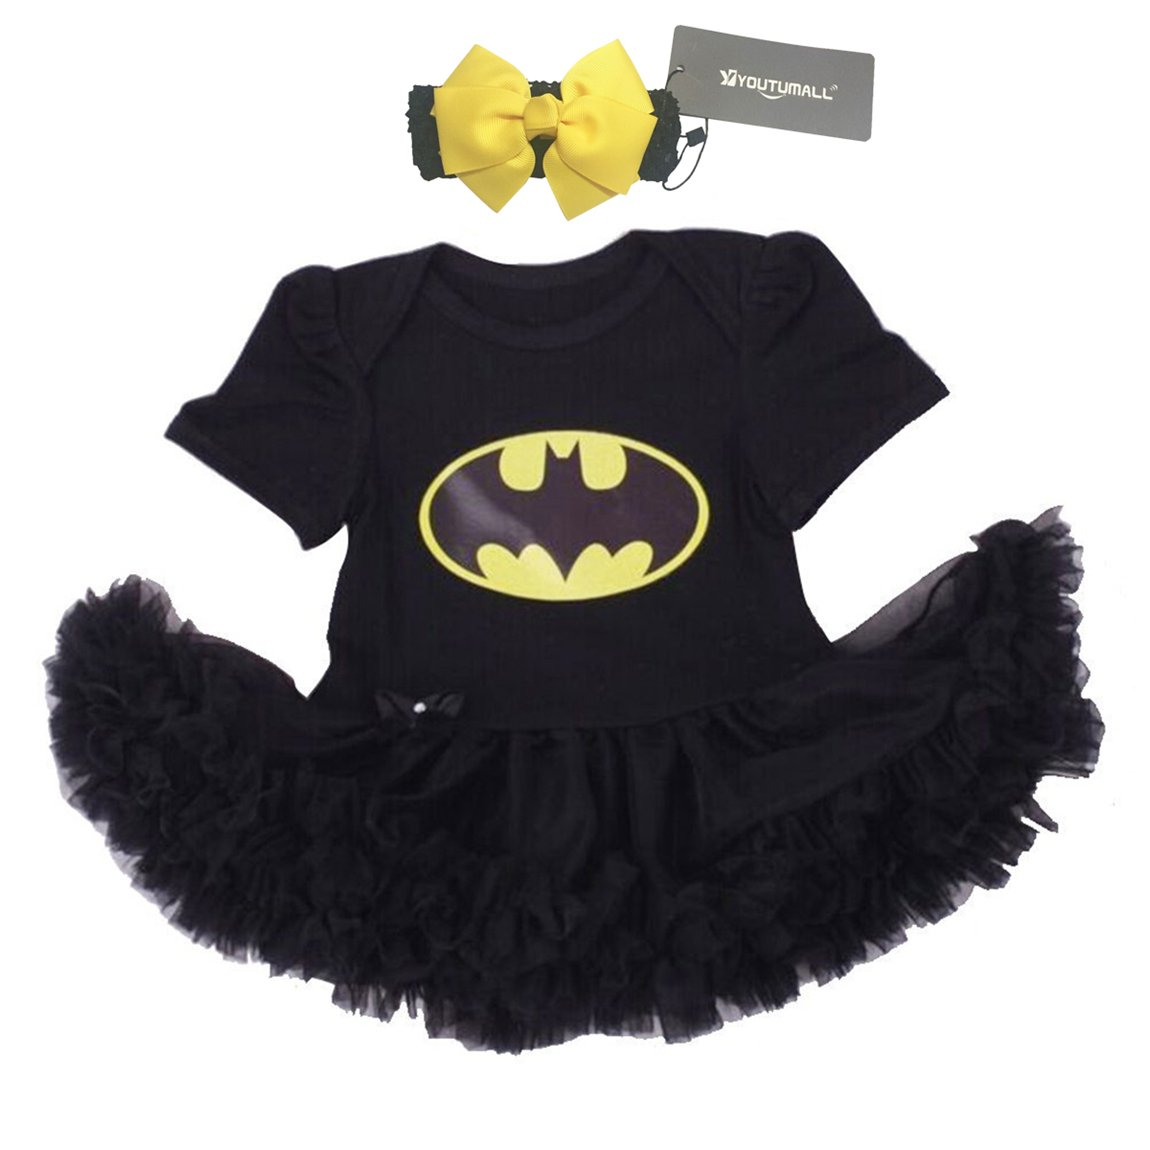 Baby Party Dress Infant Baby Cool Costume Newborn Girls Party Dress Cosplay (M:3-6 months) Bluebaby